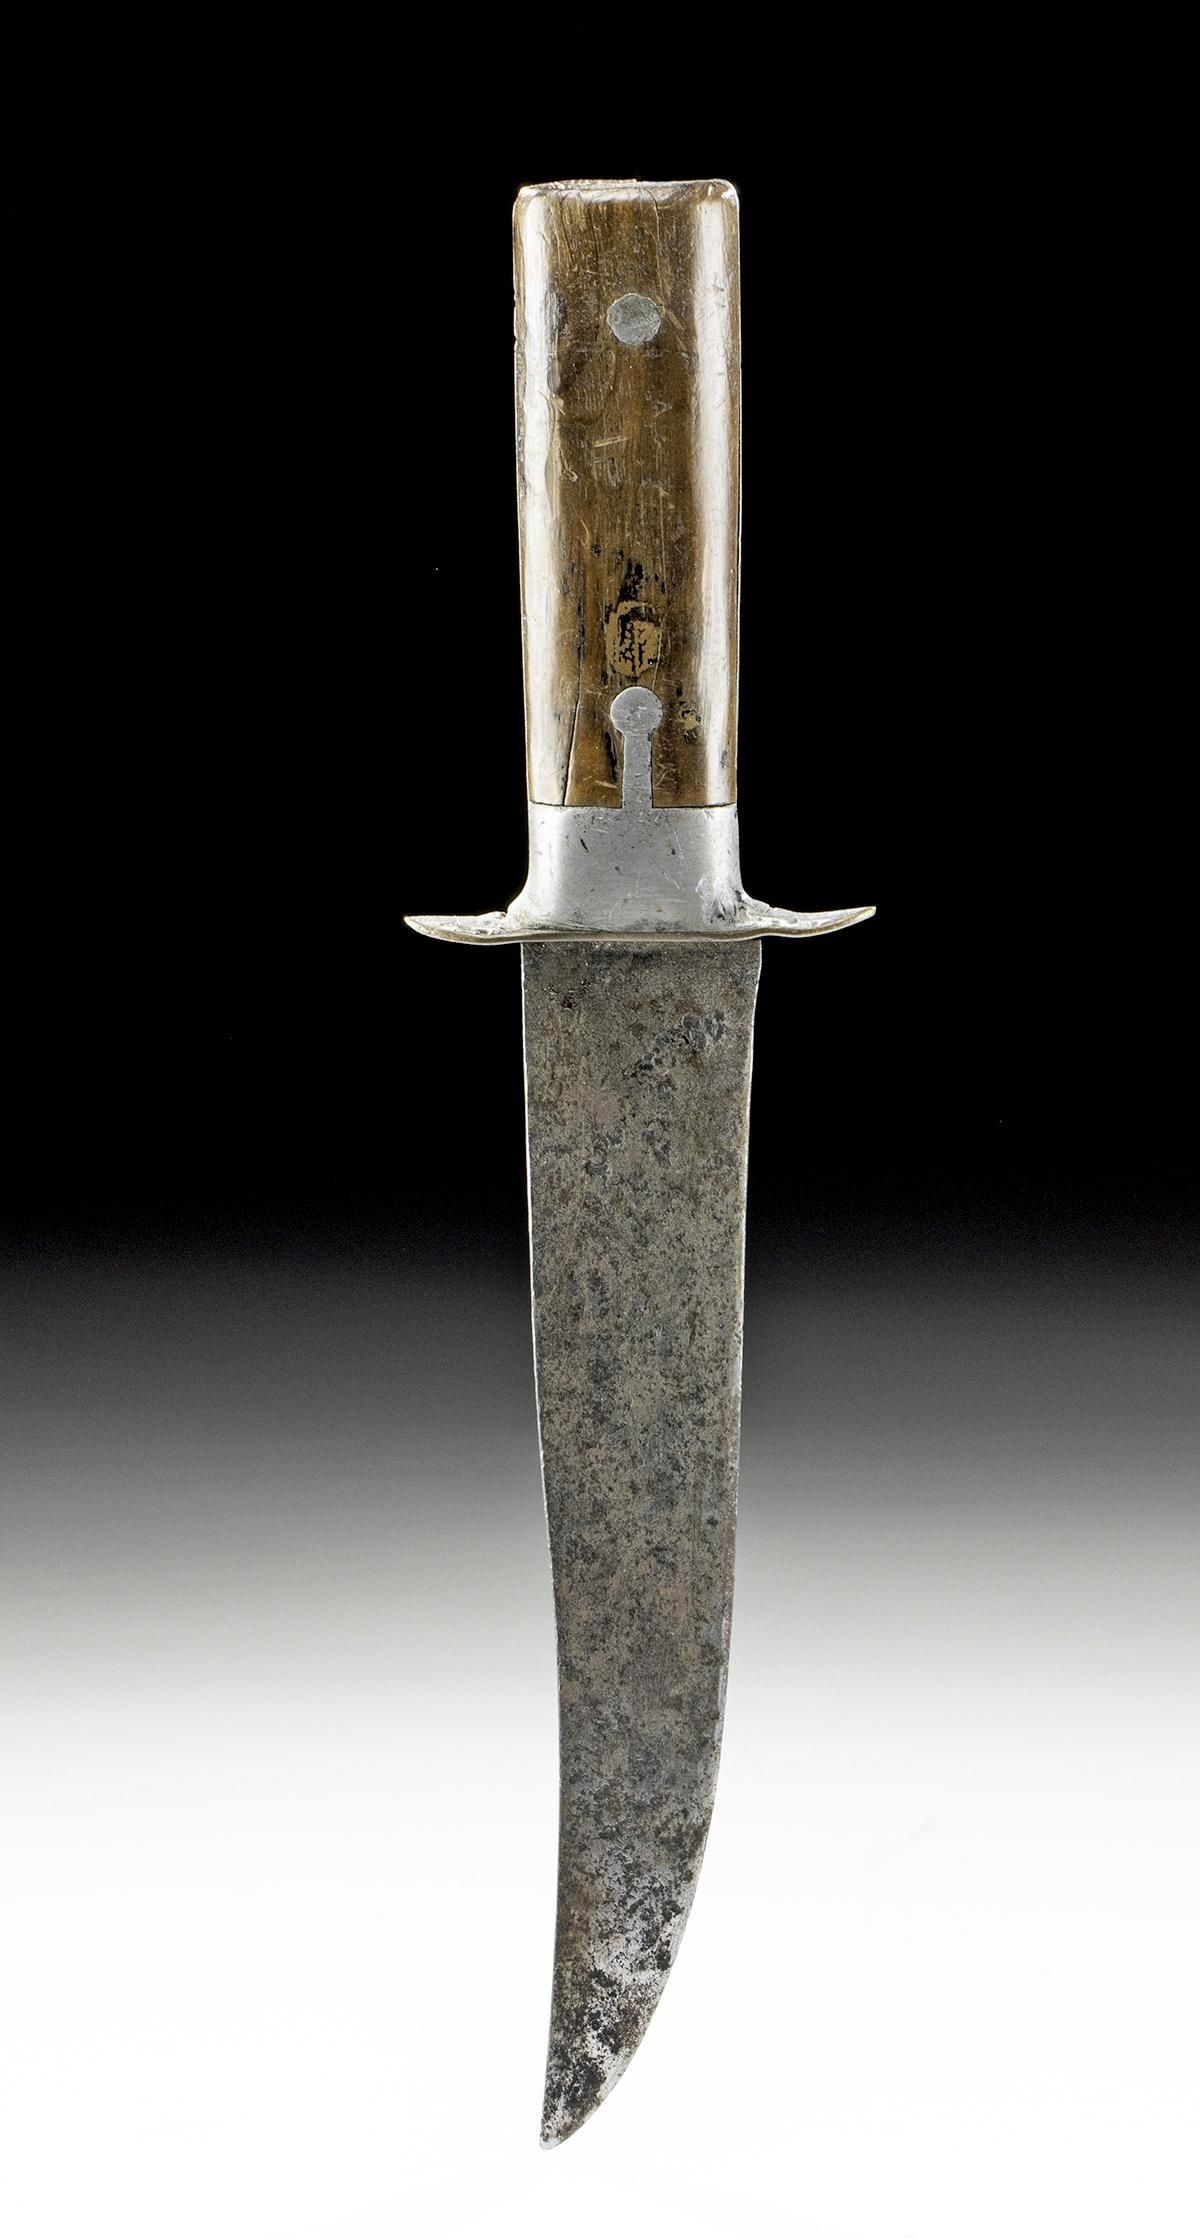 Late 18th C. American Steel Knife - Owned by Blue Duck